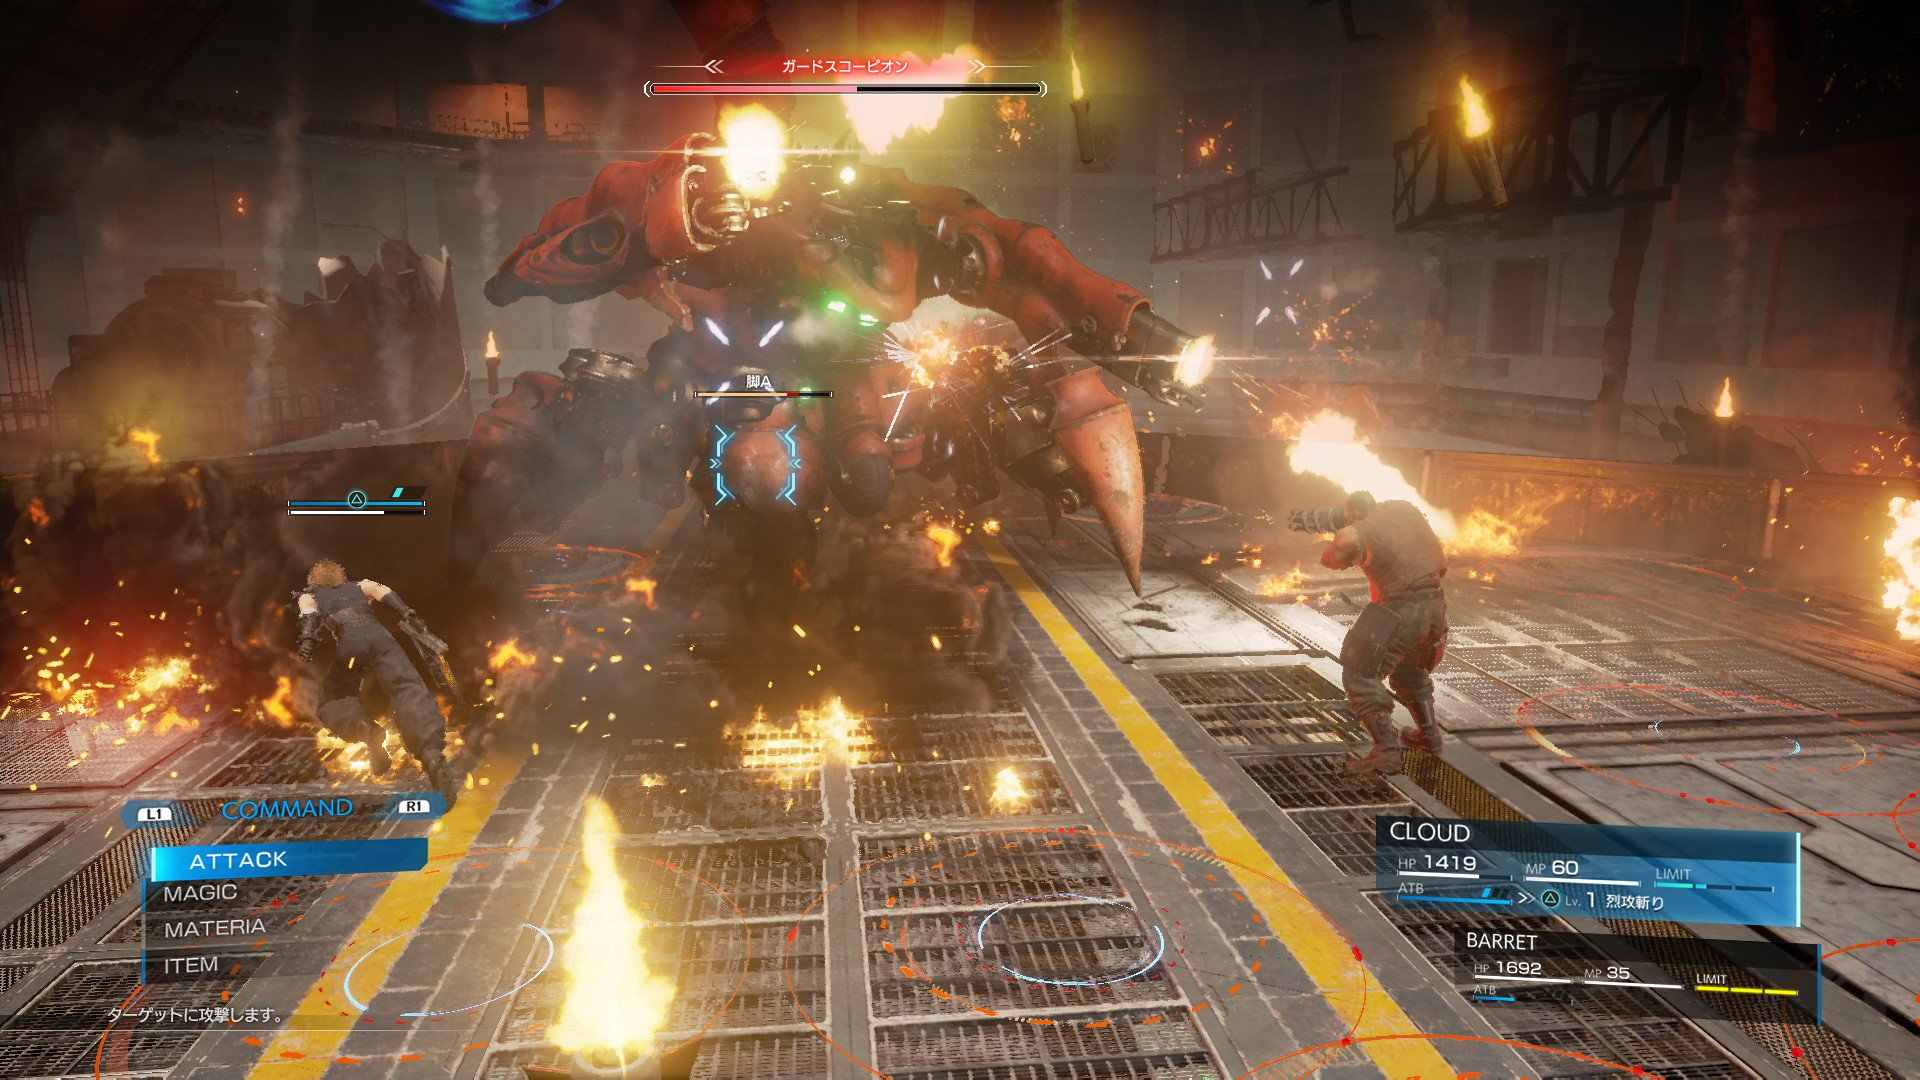 Nomura Reveals Final Fantasy VII Remake's Battle System 1